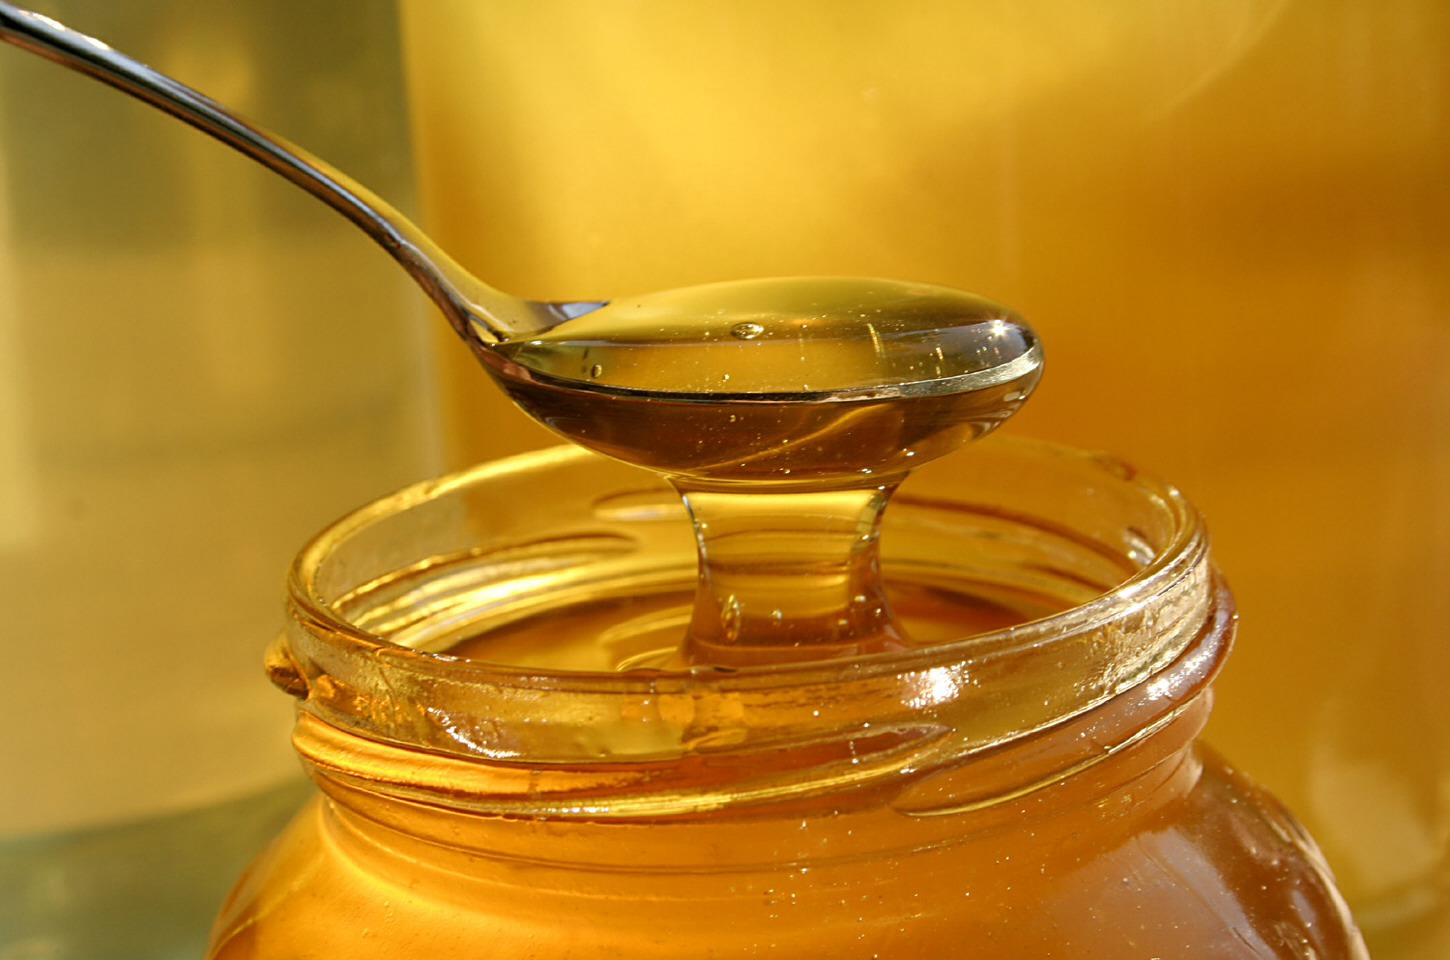 Add a drop of honey onto the lemon. Then run the lemon all over your face, for acne relief and help